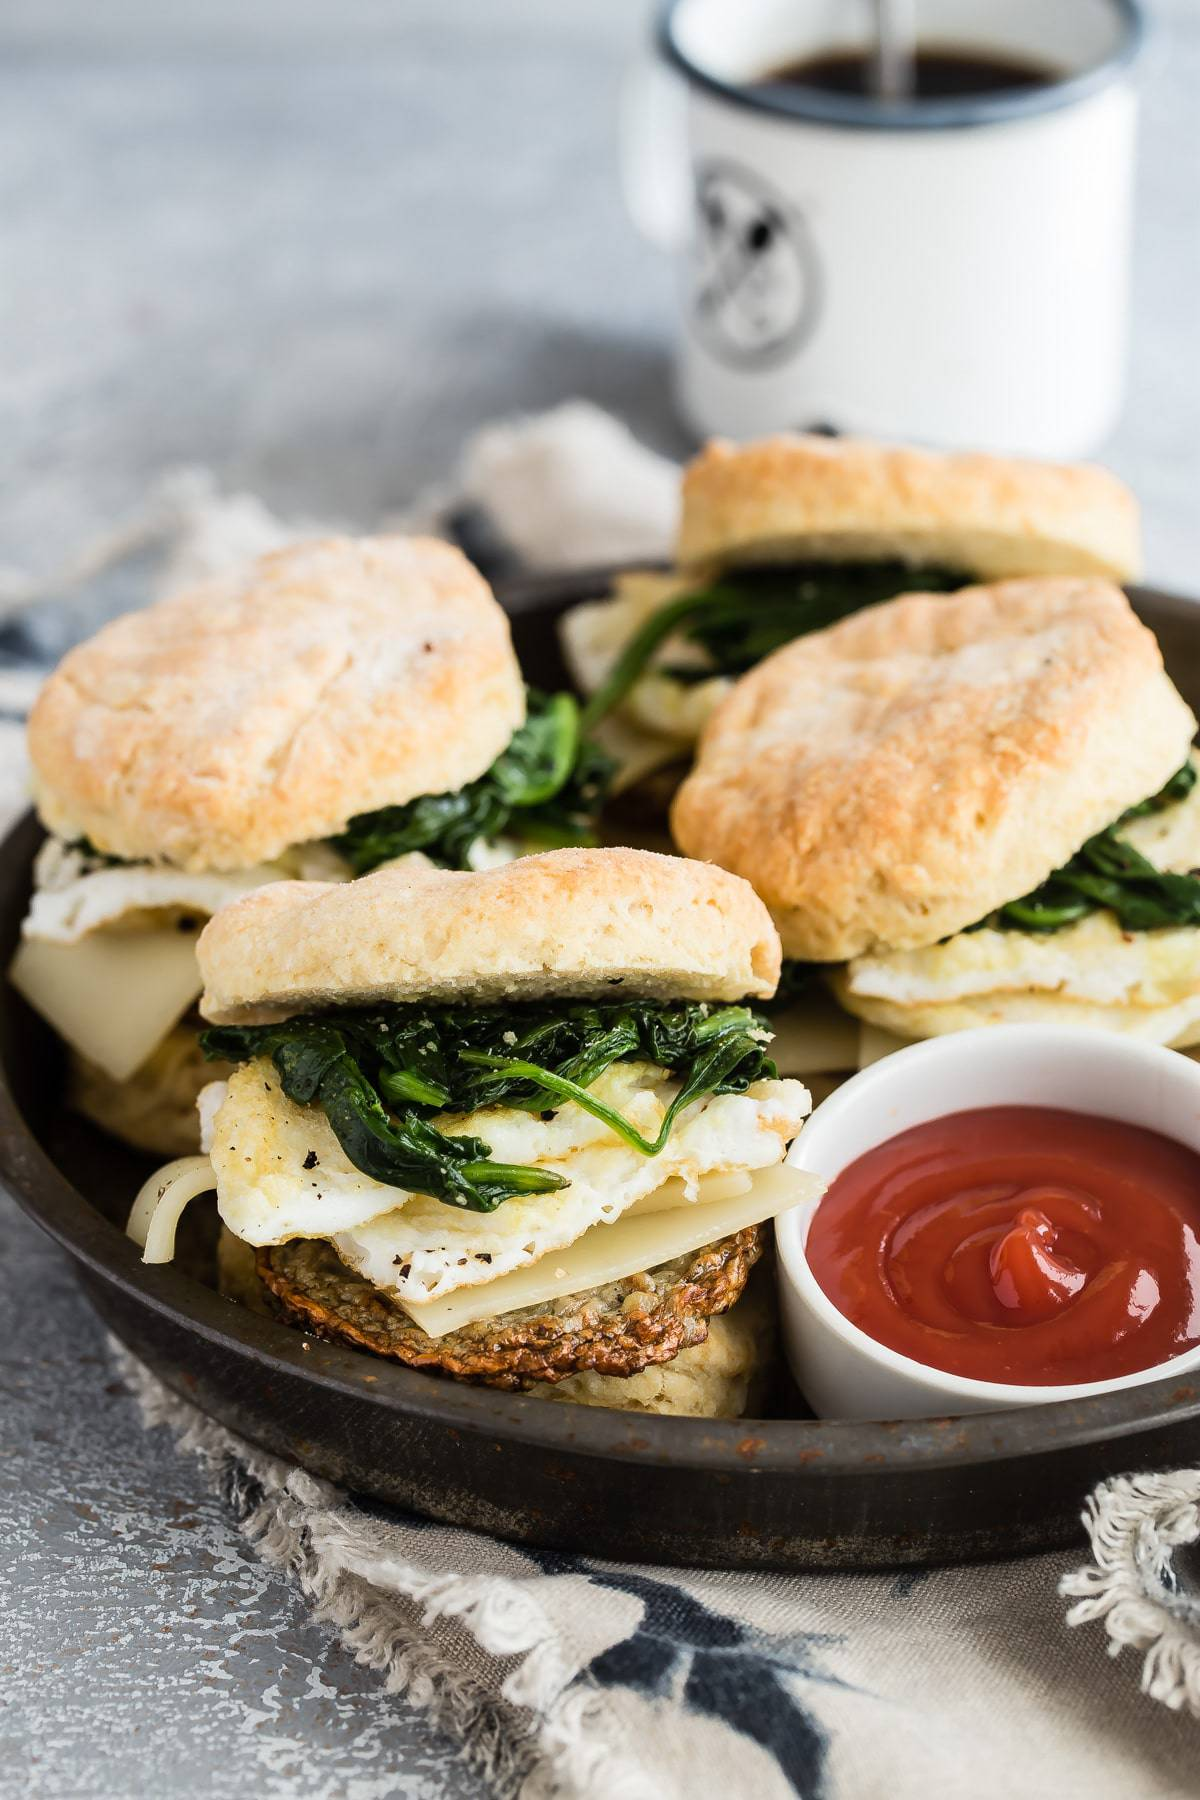 Tasty breakfast biscuit with egg white and spinach